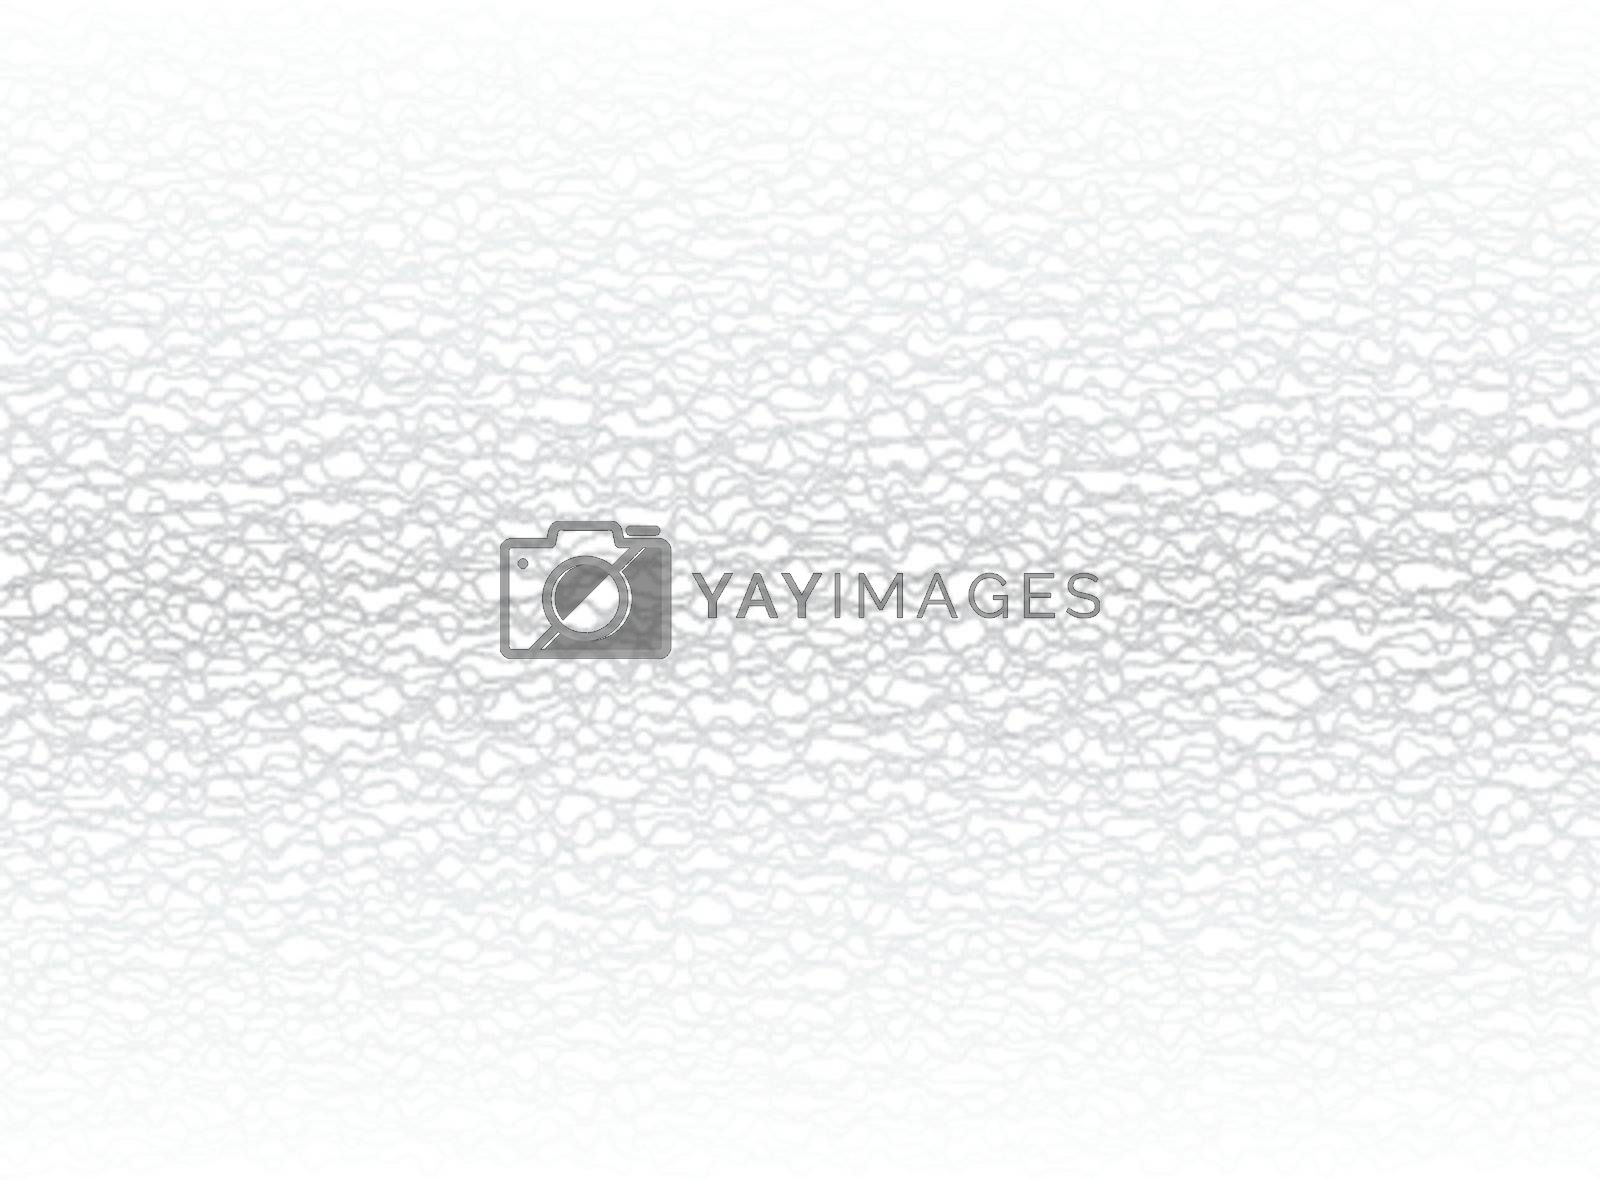 Simple graphical vector background - silver waves